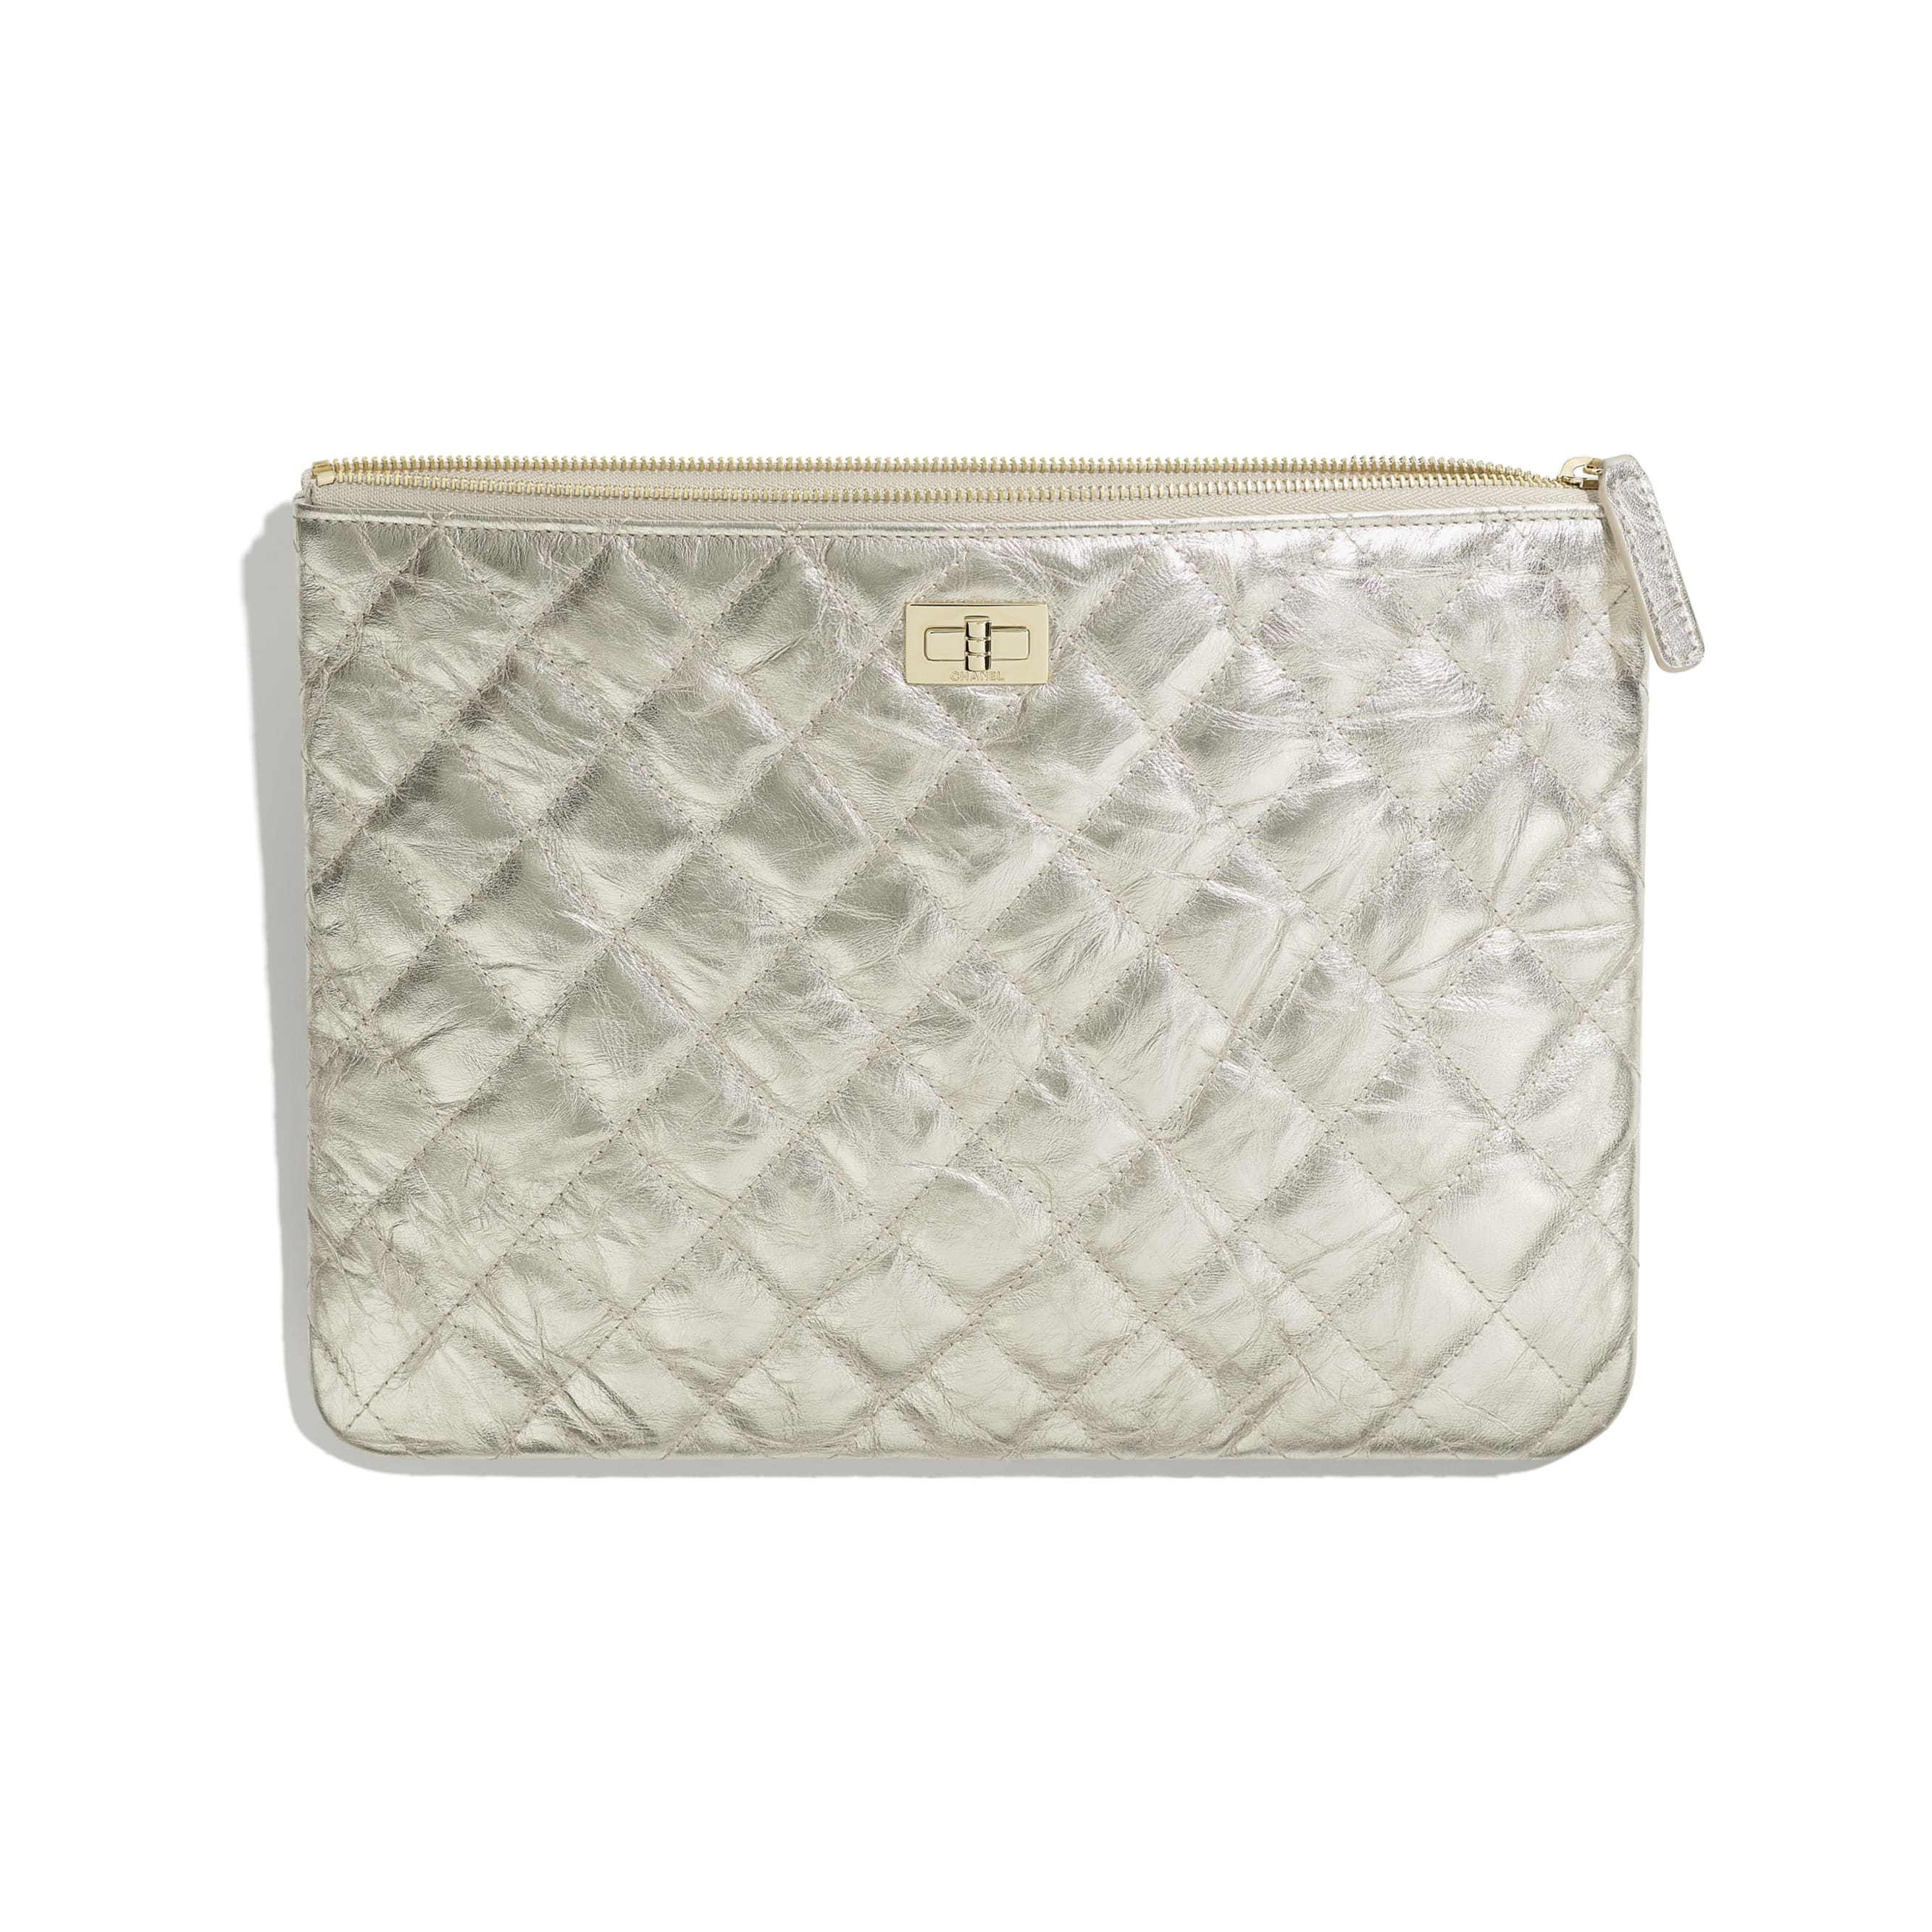 2.55 Pouch - Light Gold - Metallic Crumpled Calfskin & Gold-Tone Metal - CHANEL - Other view - see standard sized version